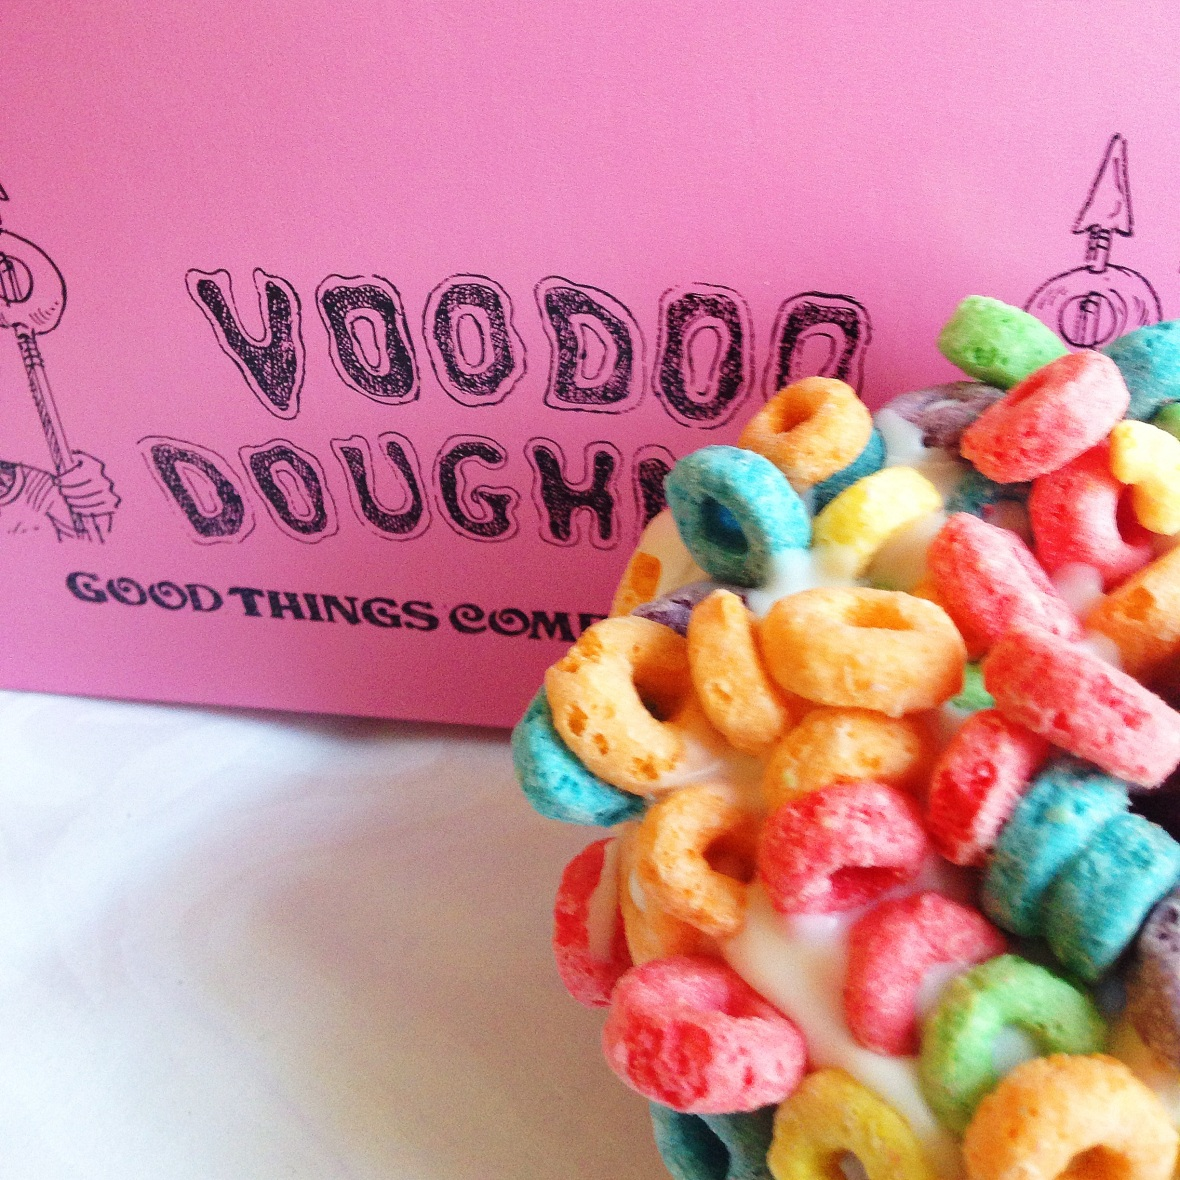 Fruit Loop donut from Voodoo doughnuts in Portland